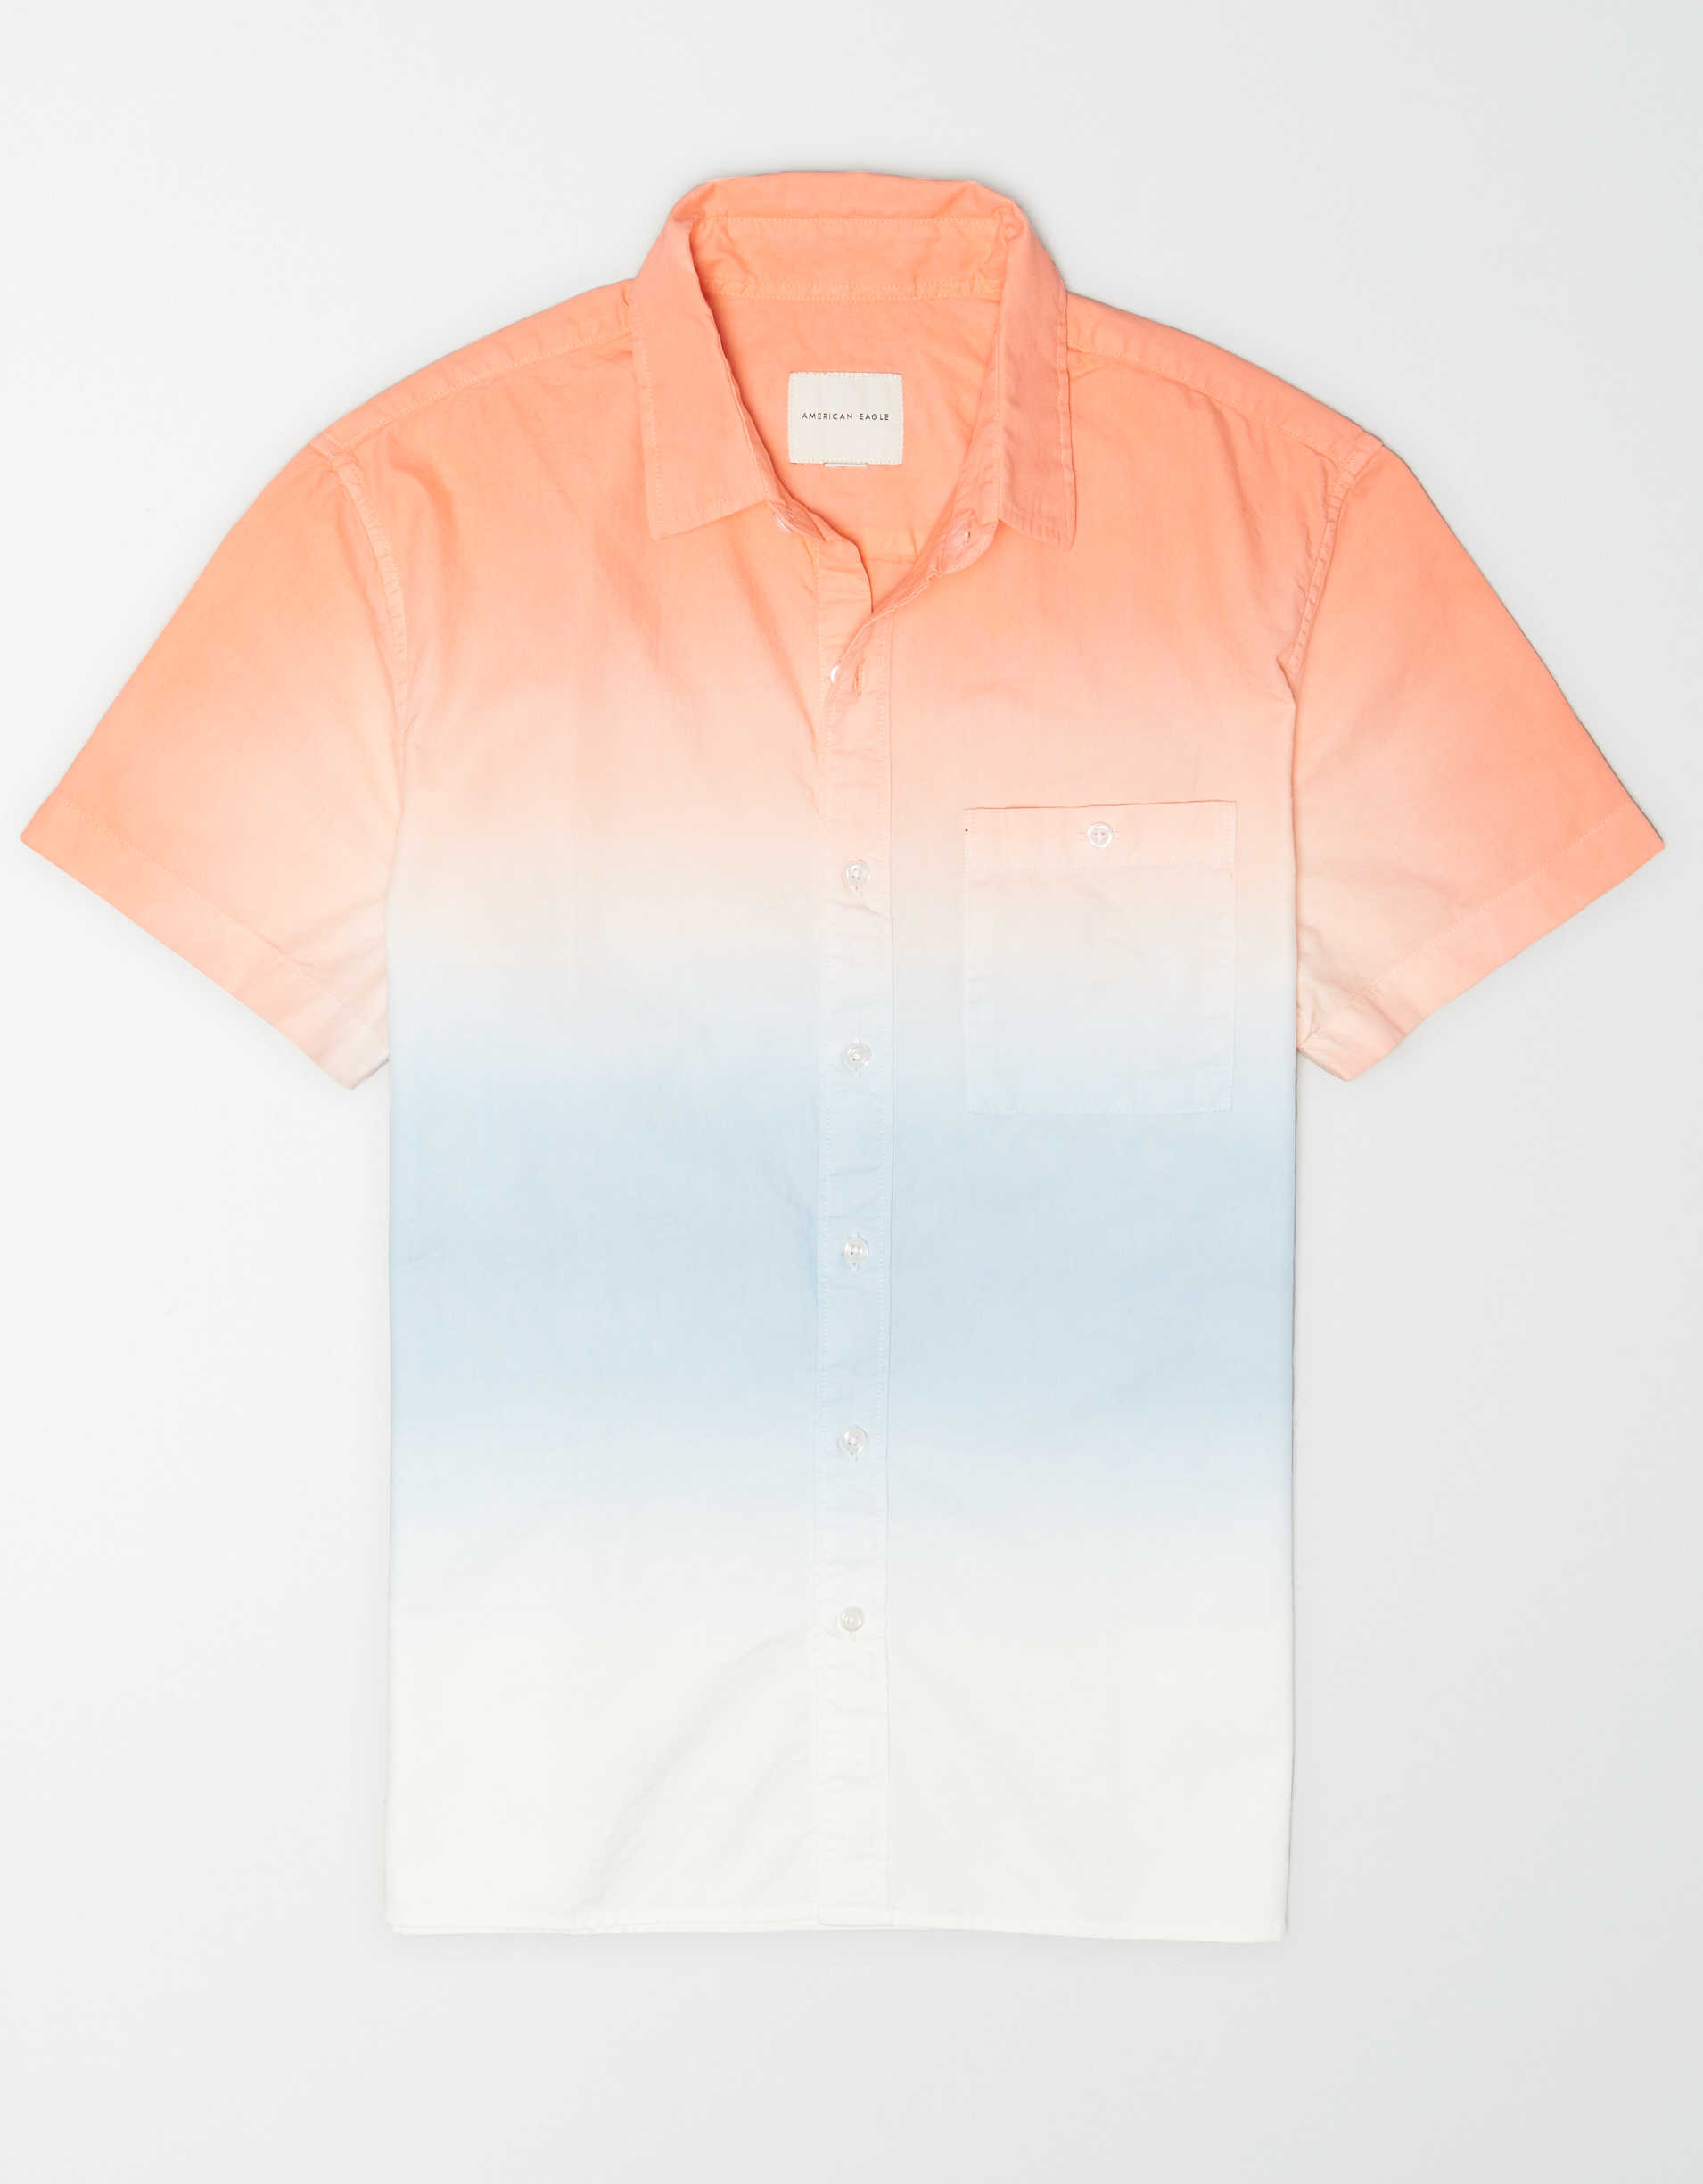 AE Short-Sleeve Dip-Dye Button-Up Shirt